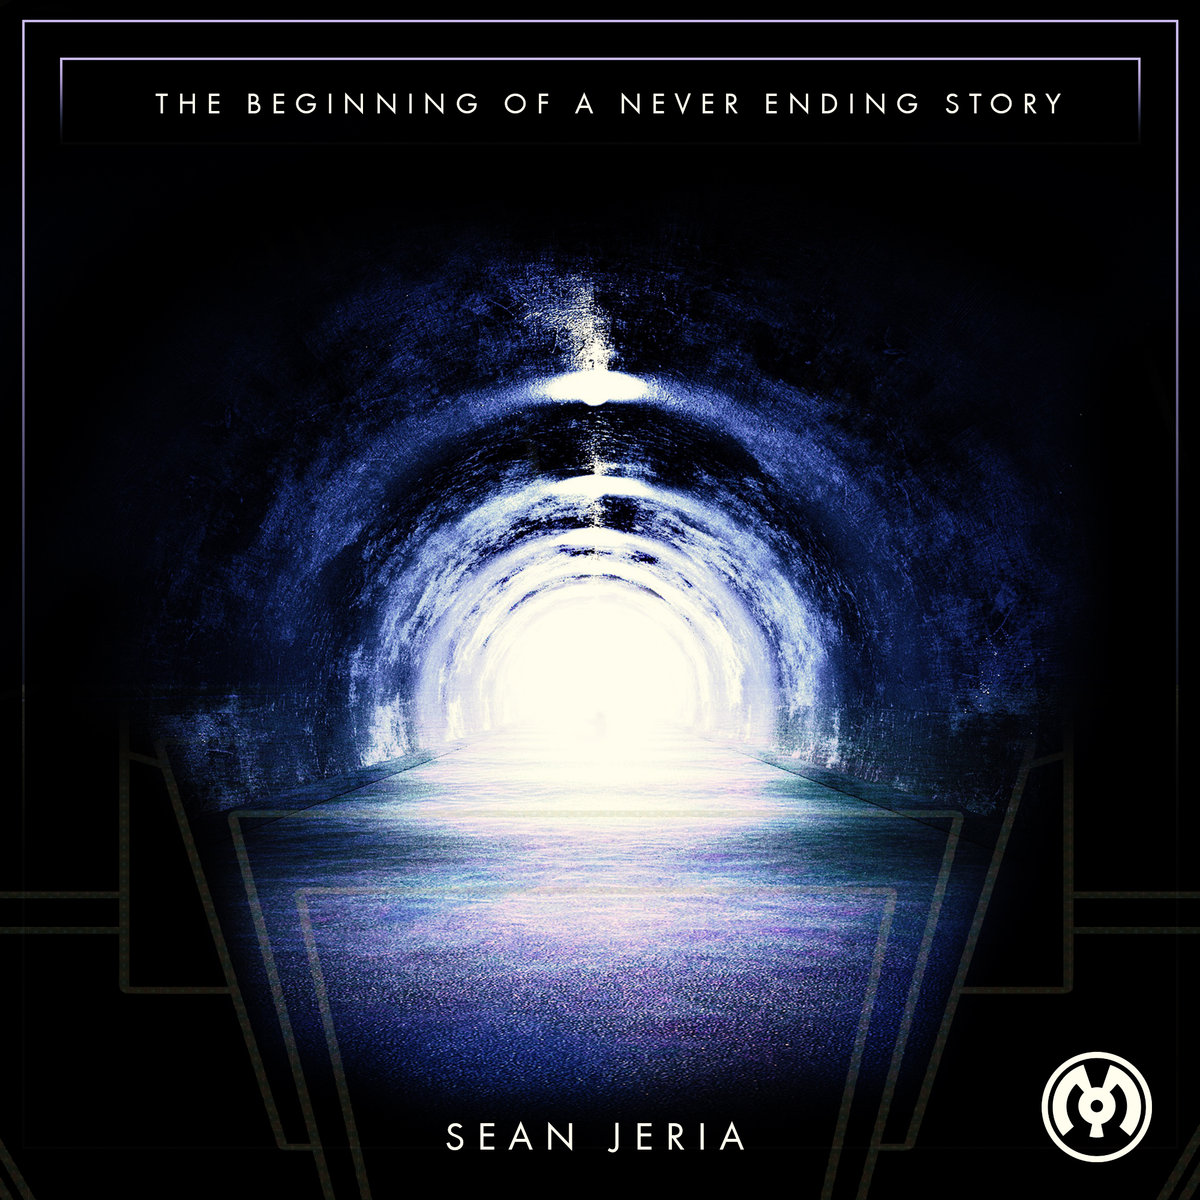 Sean Jeria & Spheric - Thank You World @ 'The Beginning of the Never Ending Story' album (electronic, dubstep)